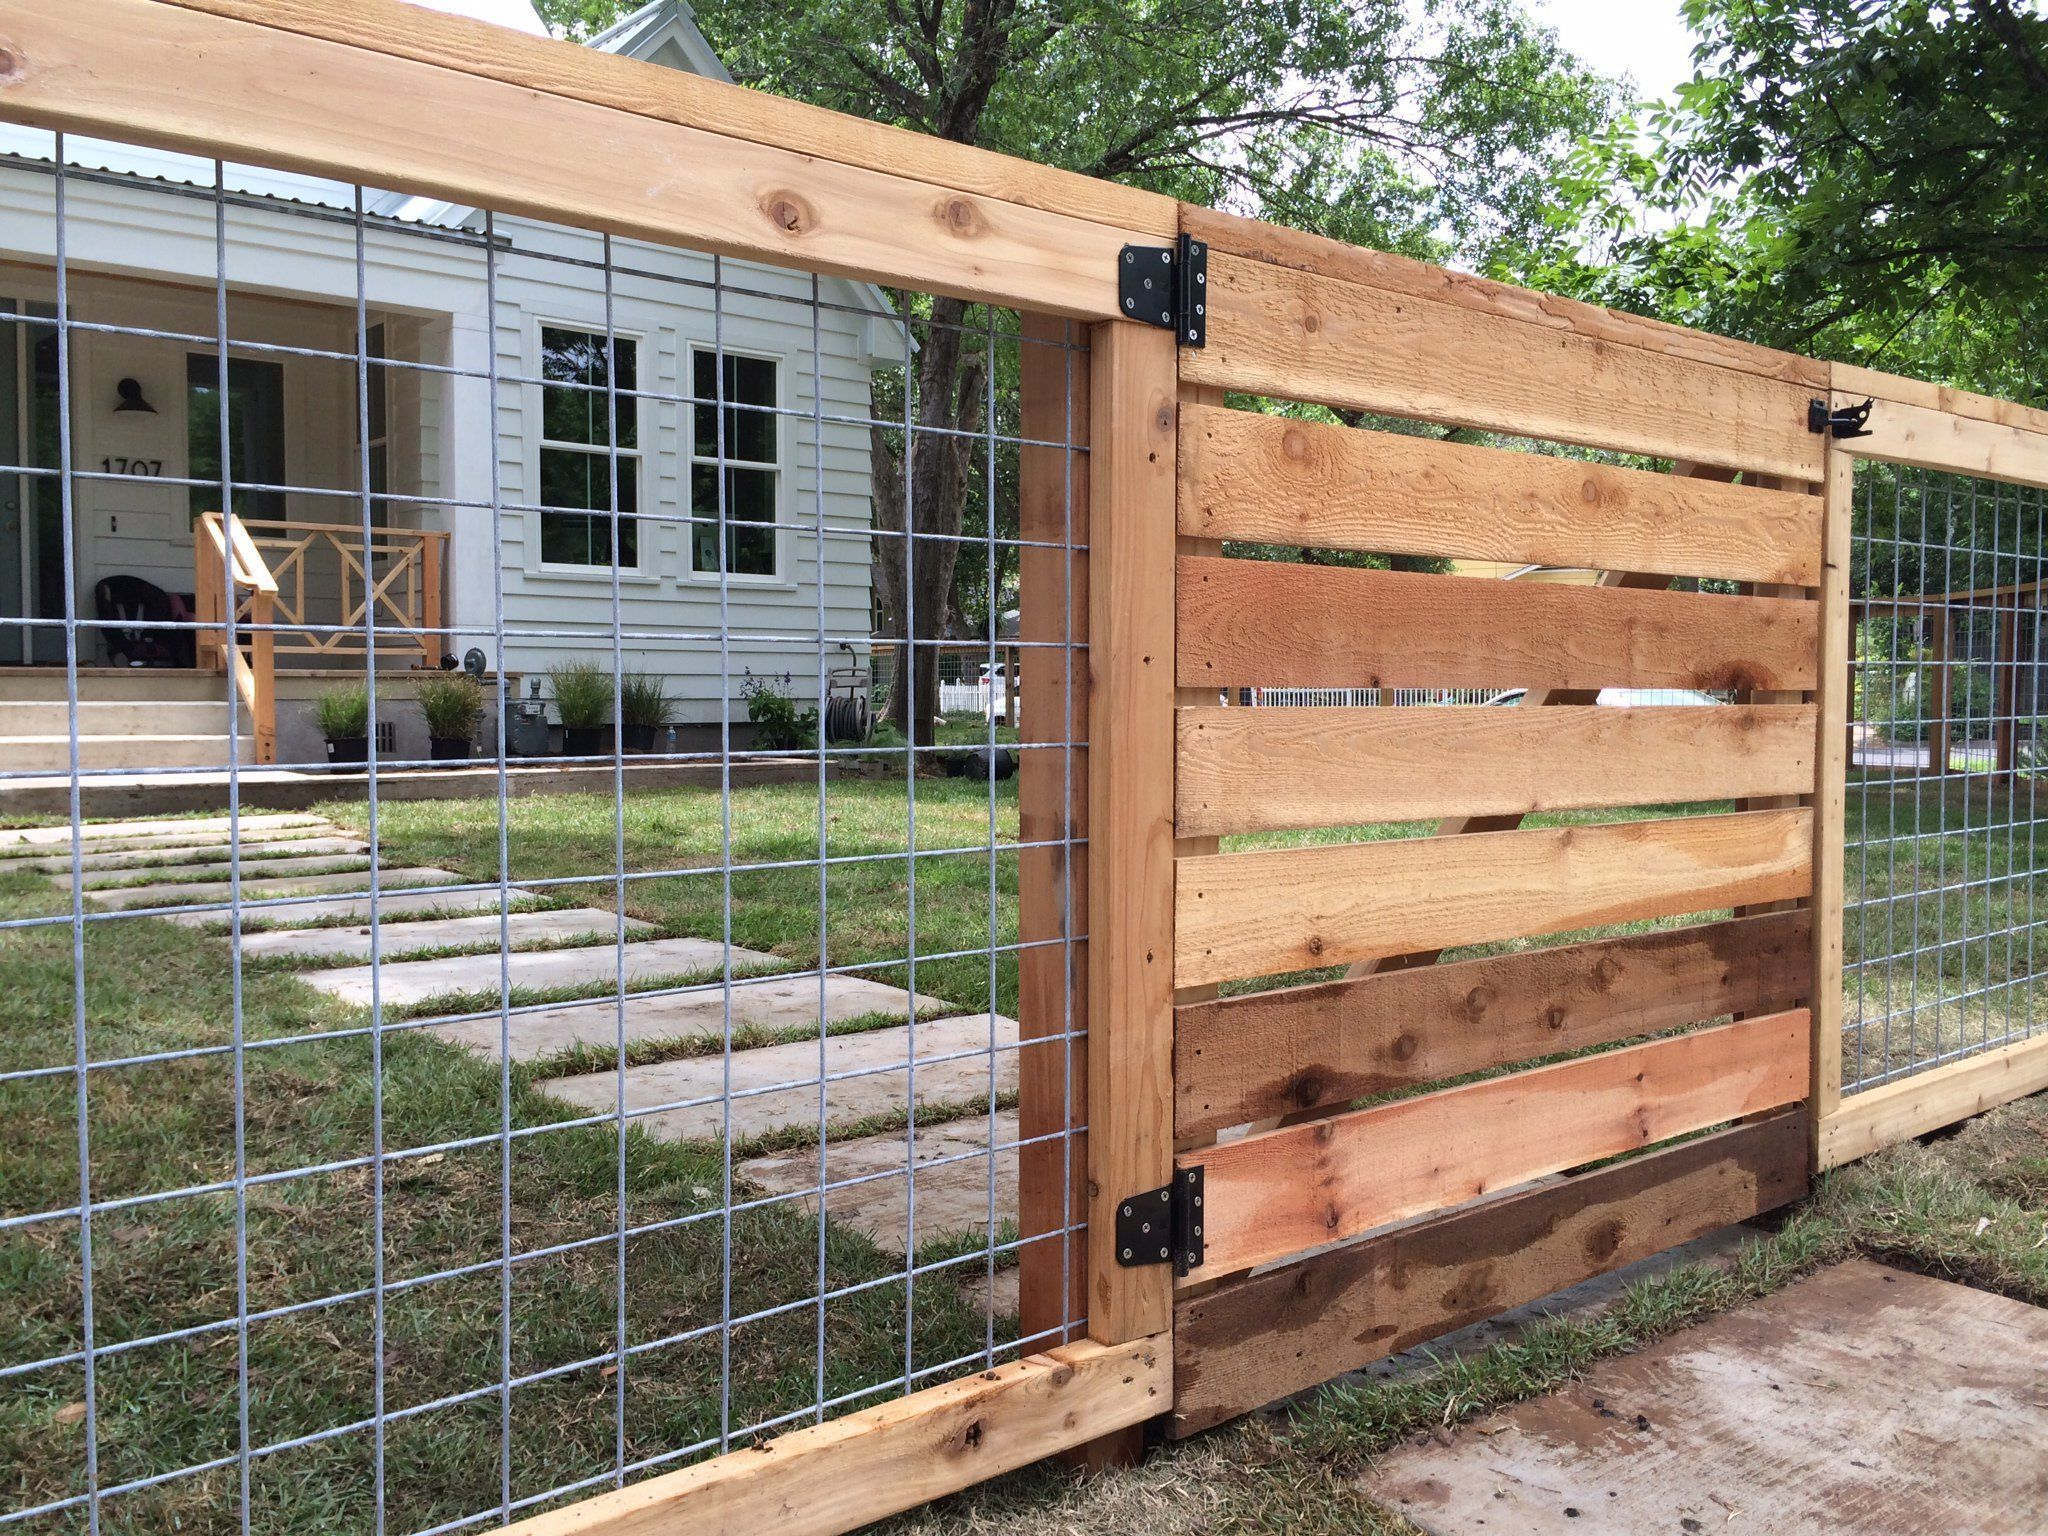 Easy DIY Hog wire fence Cost for Raised Beds How To Build